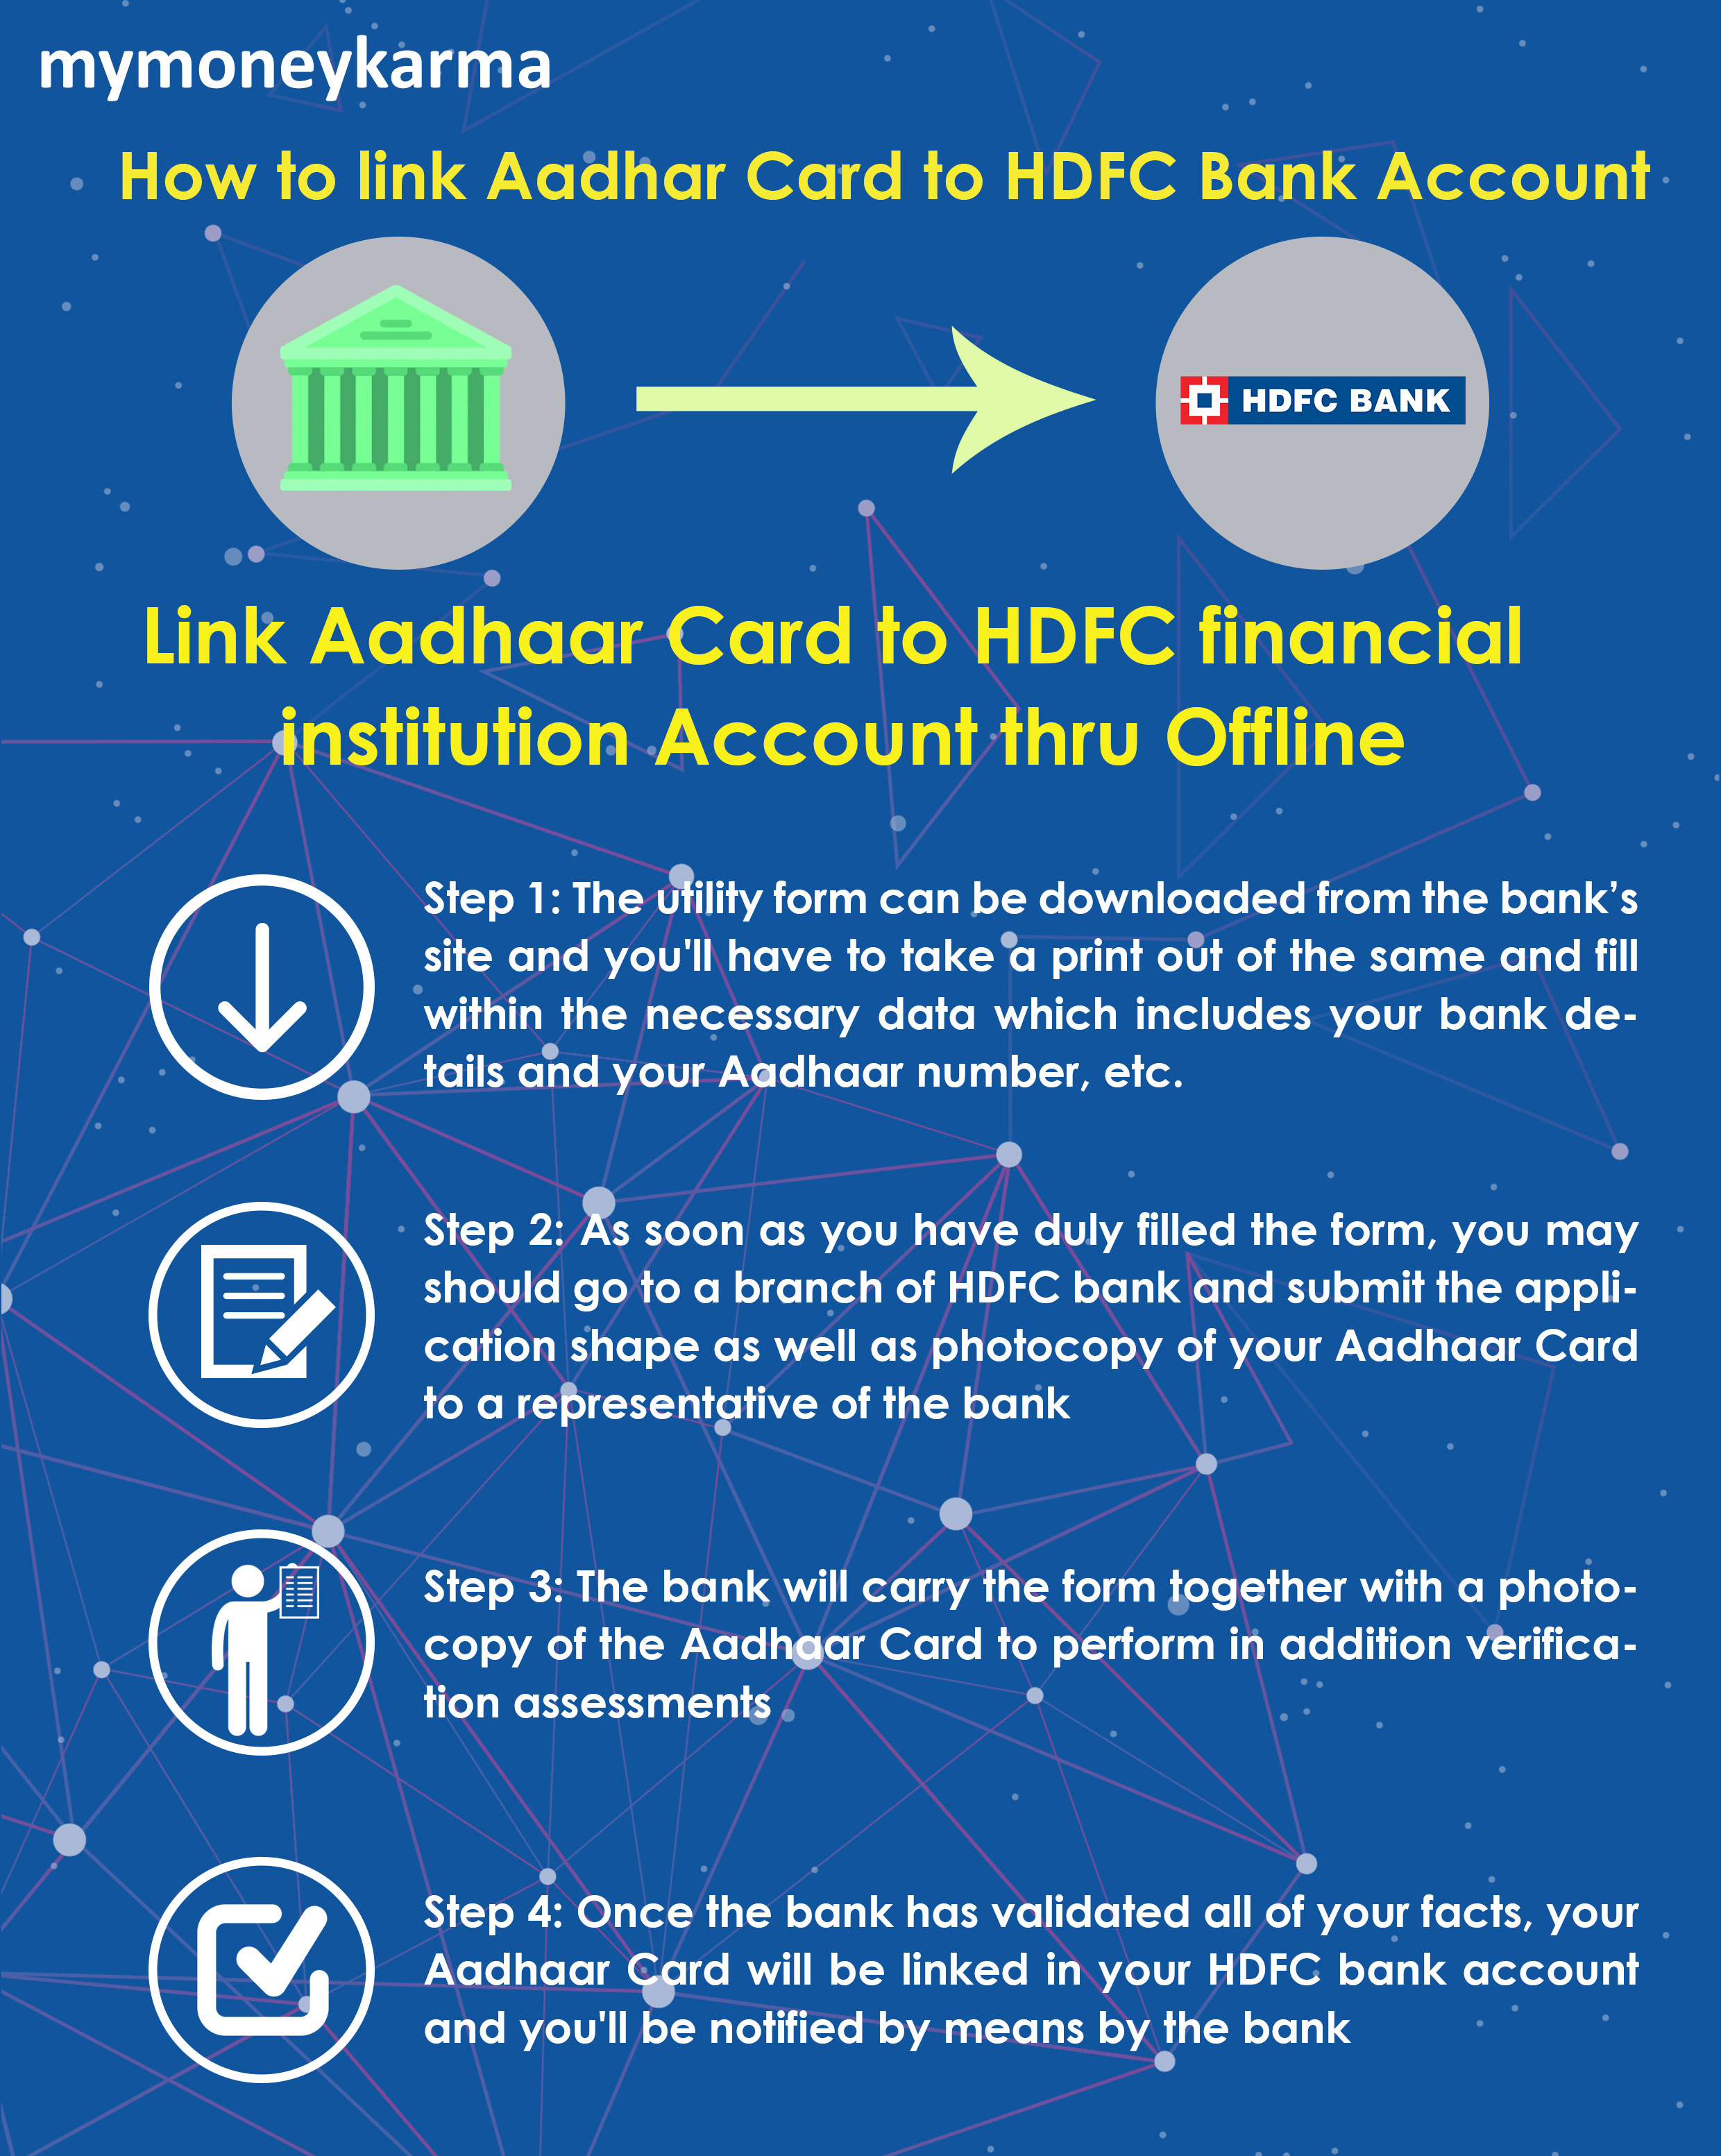 Step 1: The utility form can be downloaded from the bank's site and you'll have to take a print out of the same and fill within the necessary data which includes your bank details and your Aadhaar number, etc.                         Step 2: As soon as you have duly filled the form, you may should go to a branch of HDFC bank and submit the application shape as well as photocopy of your Aadhaar Card to a representative of the bank                         Step 3: The bank will carry the form together with a photocopy of the Aadhaar Card to perform in addition verification assessments                         Step 4: Once the bank has validated all of your facts, your Aadhaar Card will be linked in your HDFC bank account and you'll be notified by means by the bank